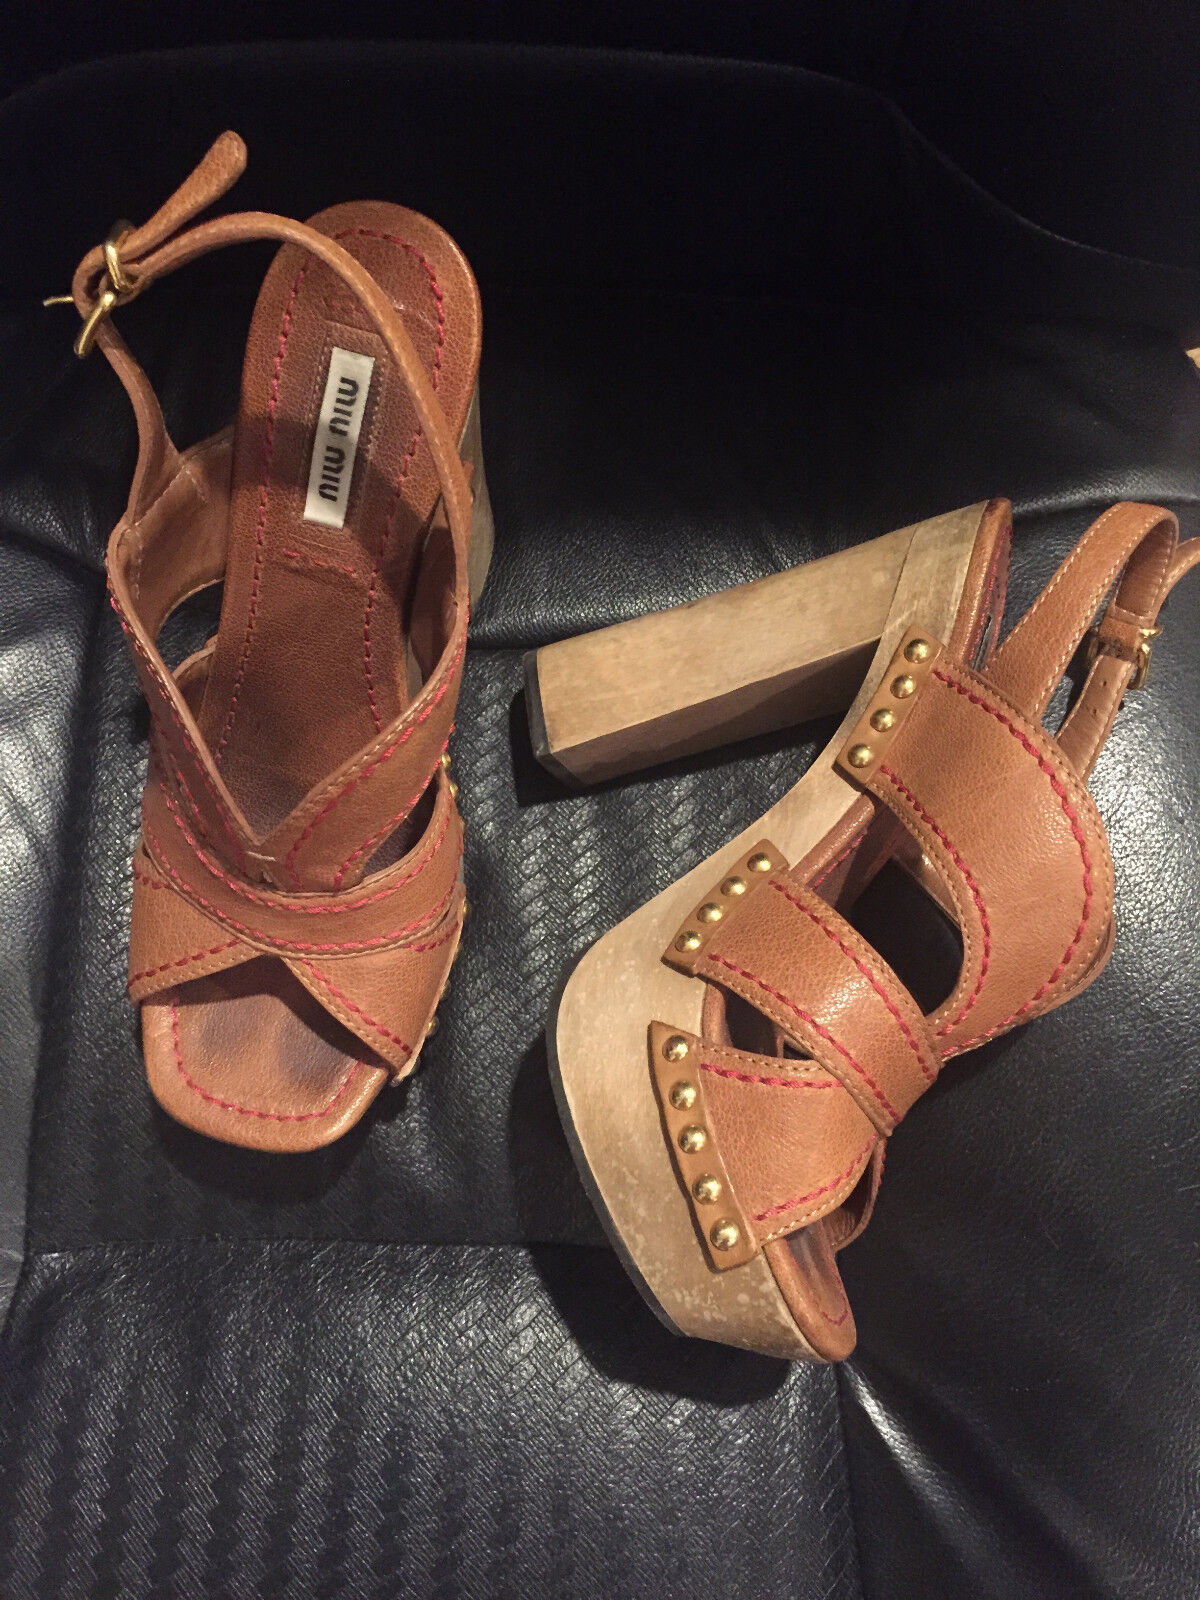 PREOWNED , GREAT CONDITION, MIU MIU CAMEL LEATHER HEELS SIZE 37 1/2,   KARICOH